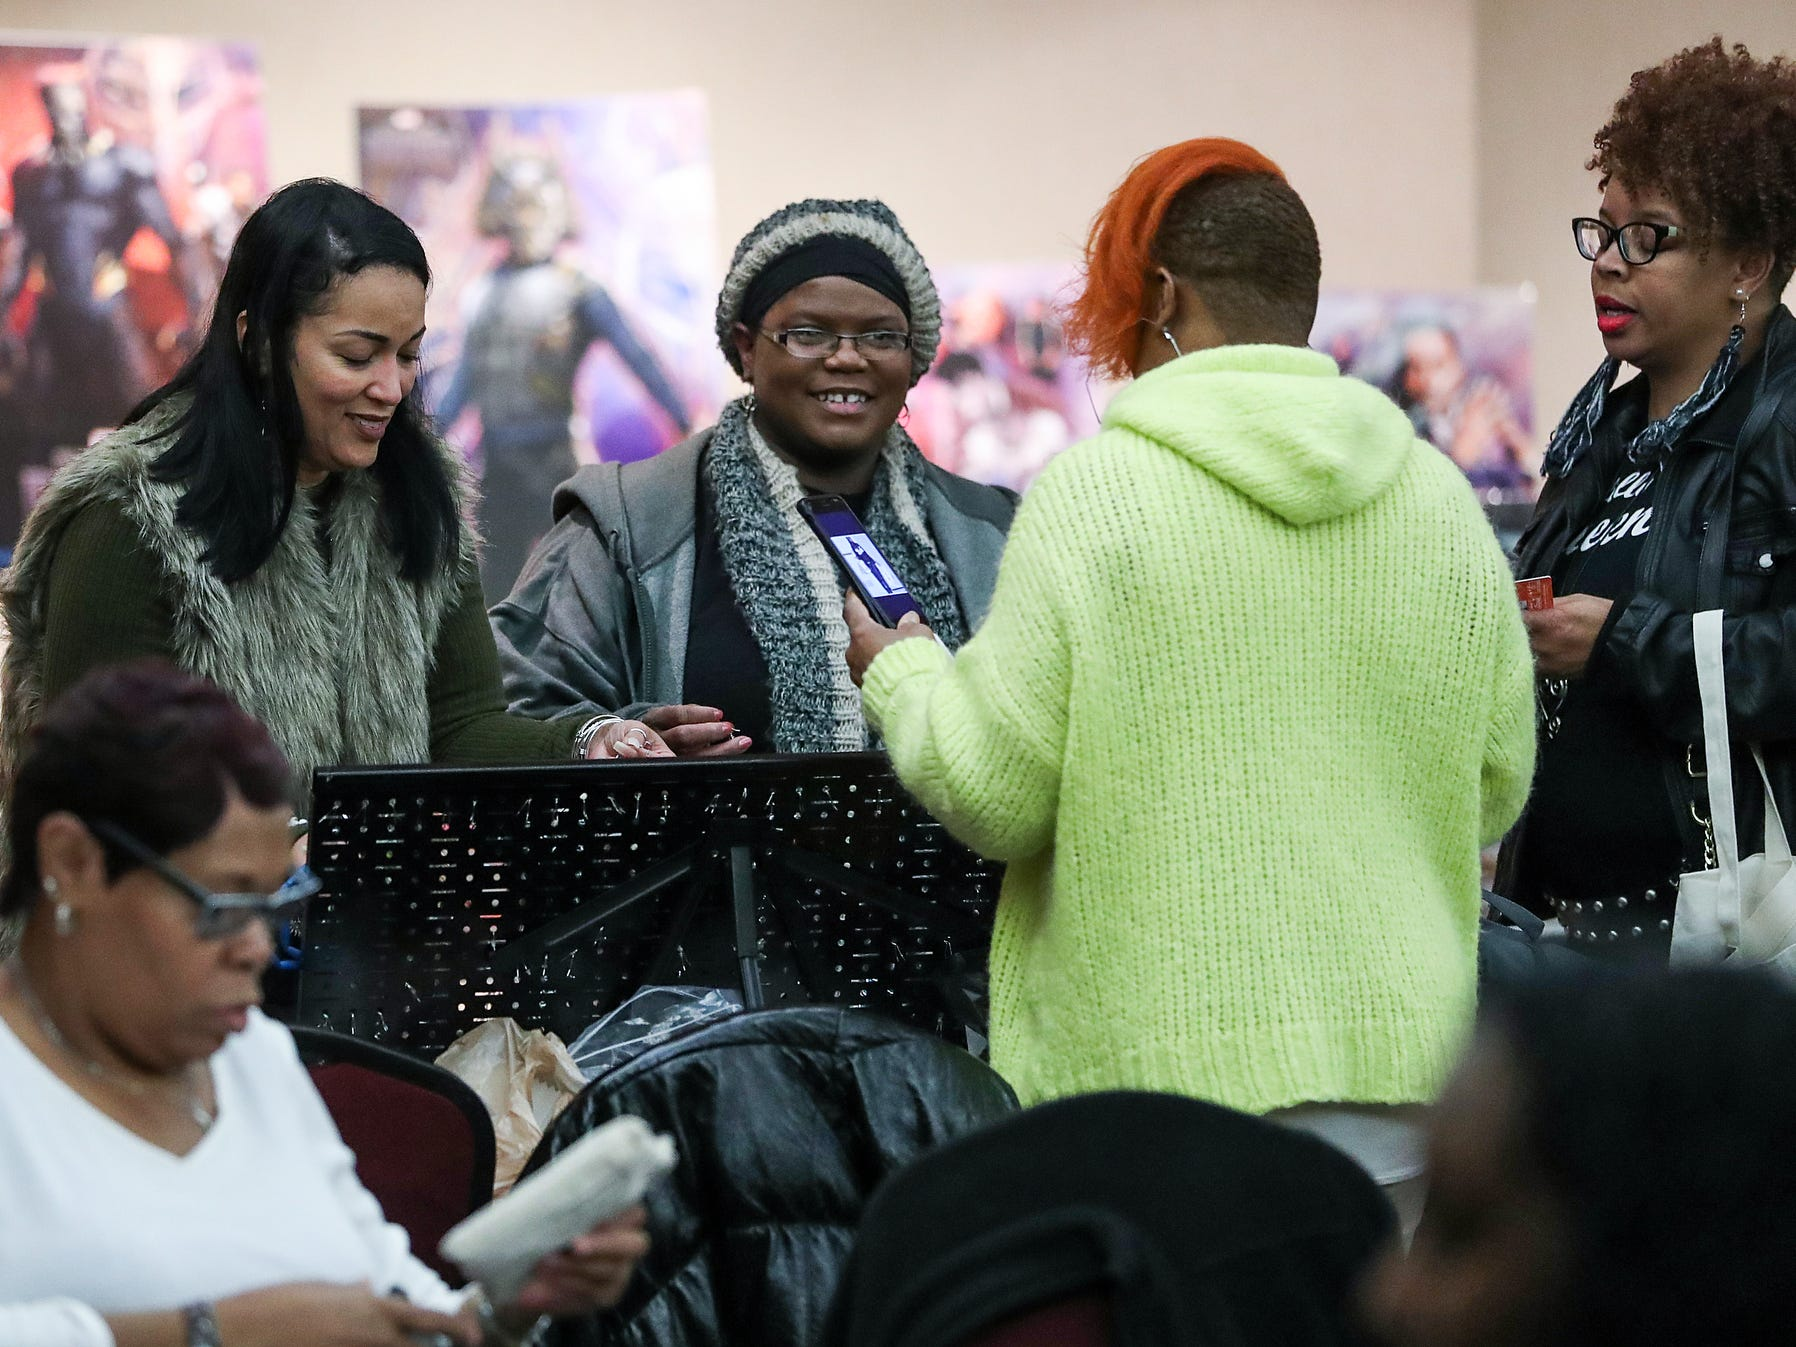 Shoppers browse a market showcasing more than 65 women and minority-owned small businesses at the Murat Shrine Temple in Indianapolis, Saturday, Nov. 24, 2018. The fifth annual event is part of Small Business Saturday, launched nationally by American Express eight years ago to help independently owned businesses bounce back from the recession.